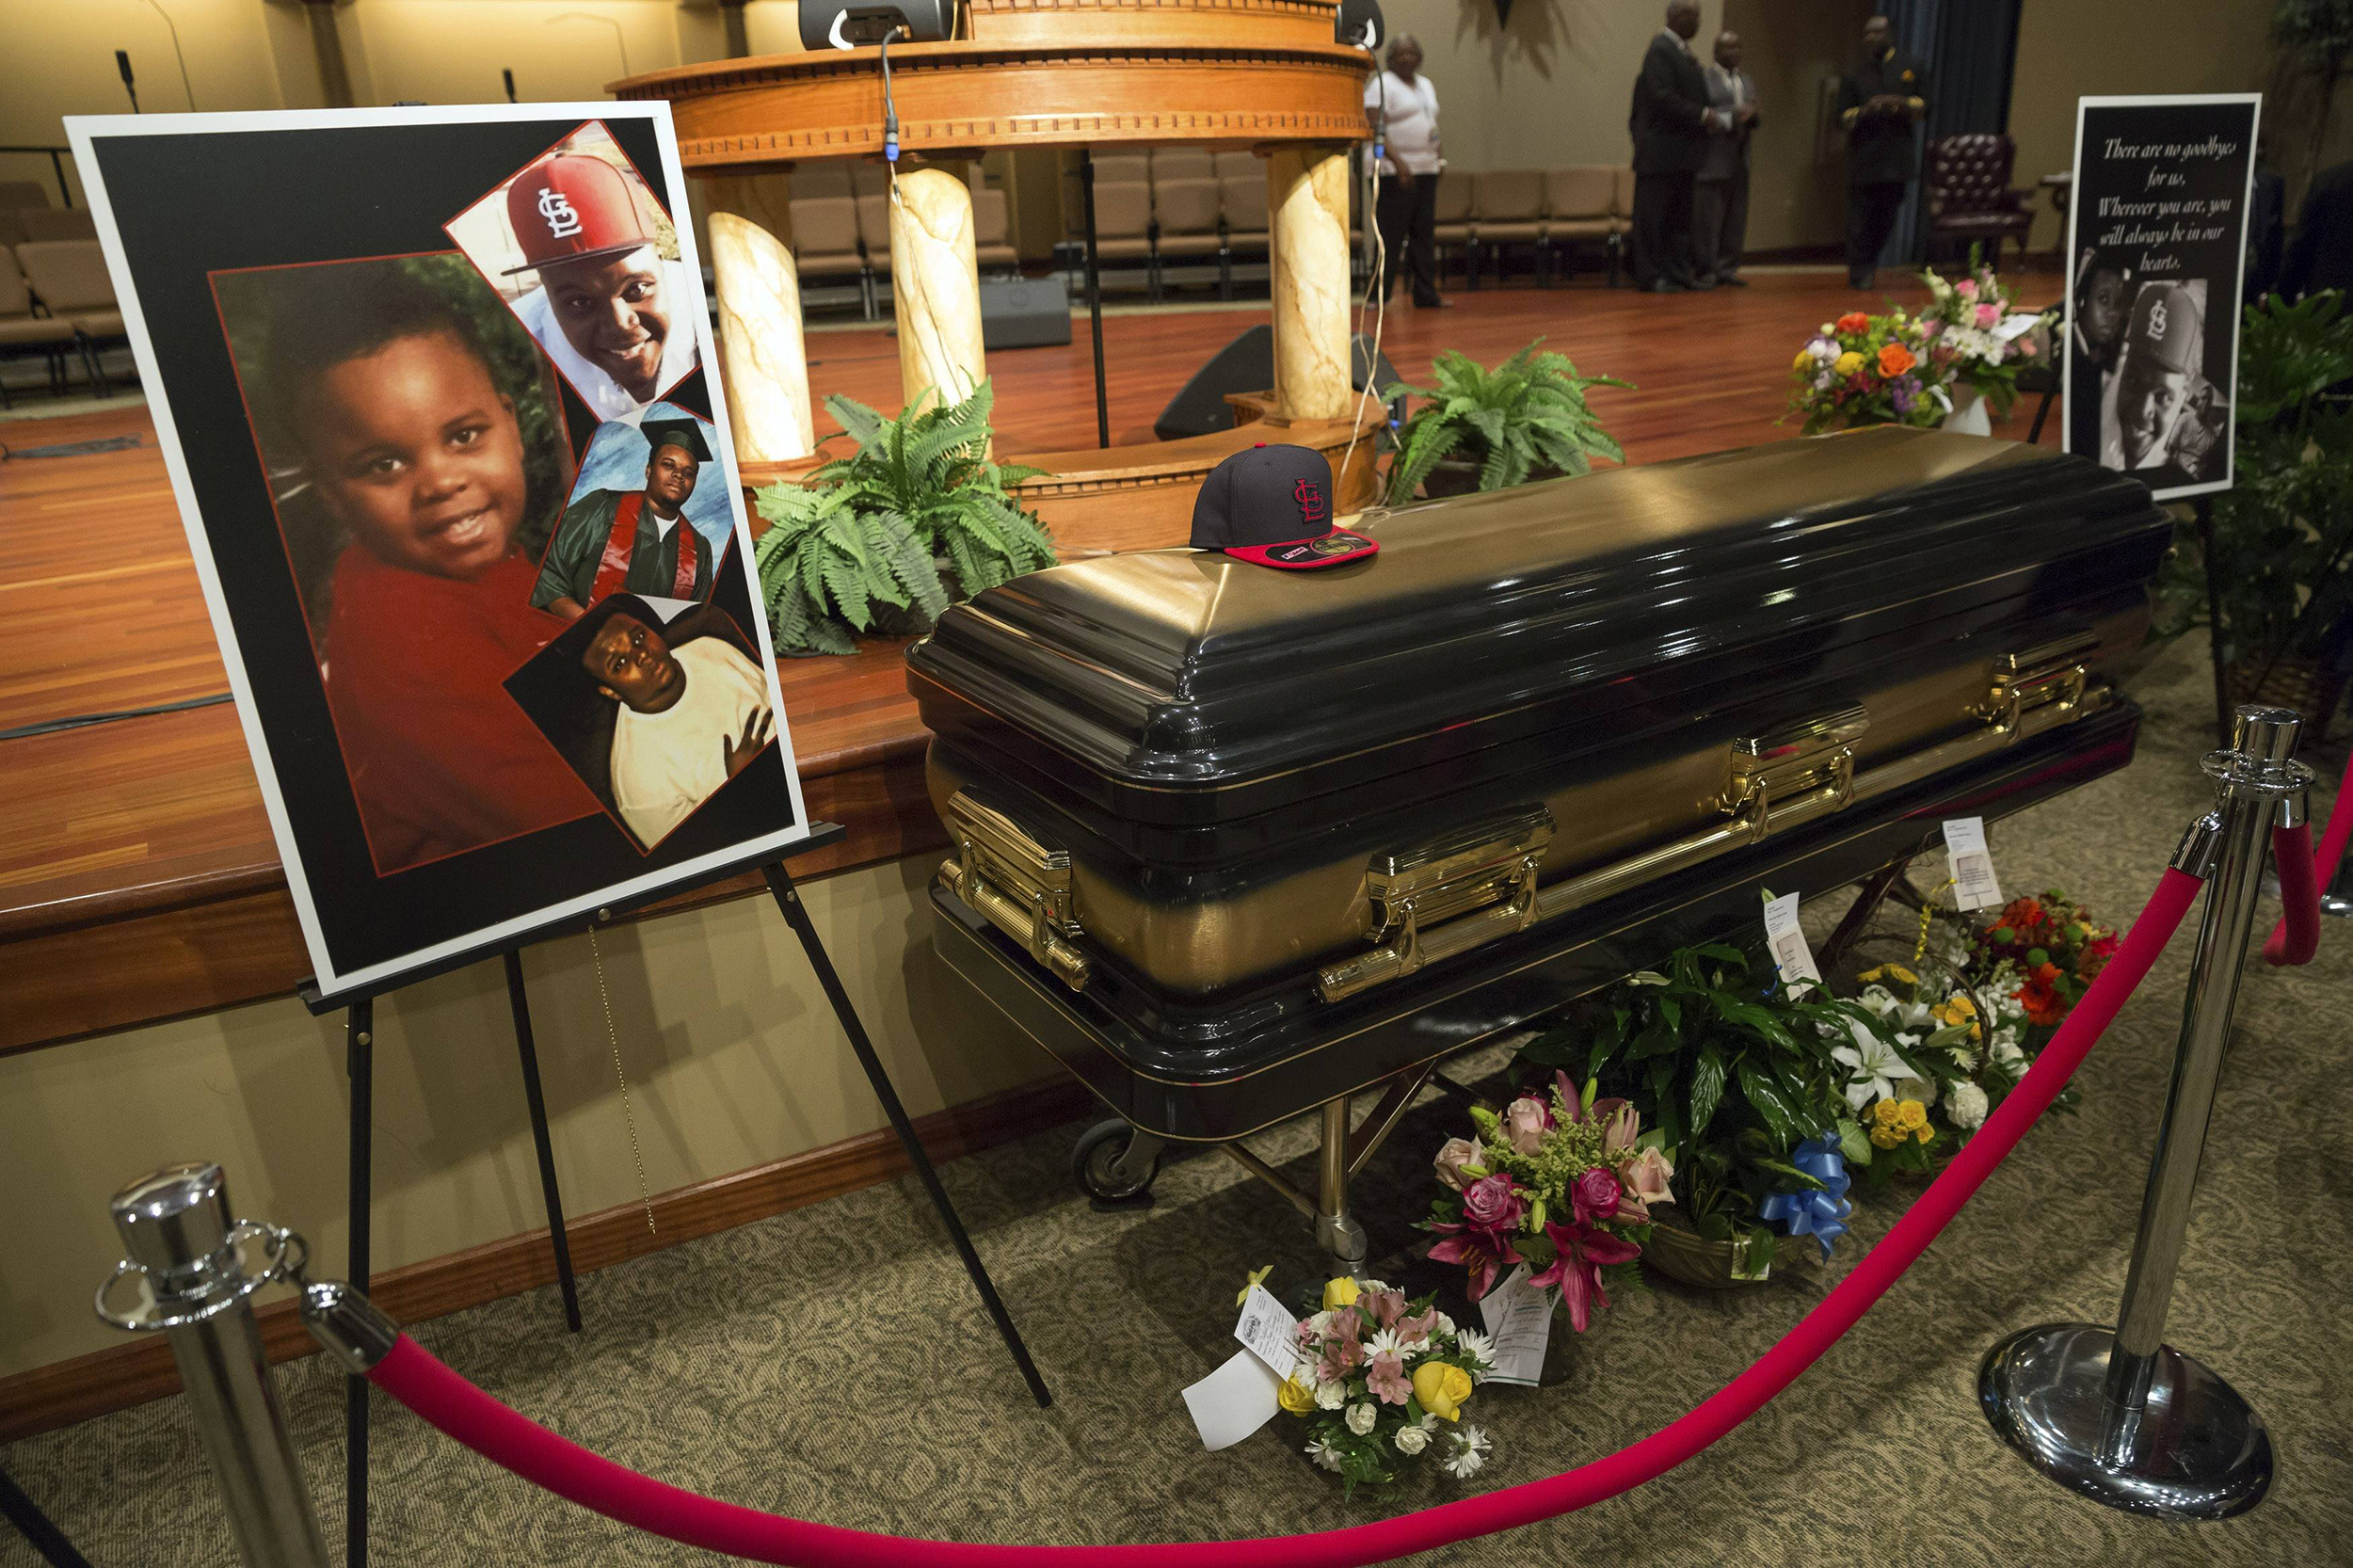 http://media1.s-nbcnews.com/i/MSNBC/Components/Slideshows/_production/ss-140825-michael-brown-funeral/ss-140825-michael-brown-funeral-10.jpg